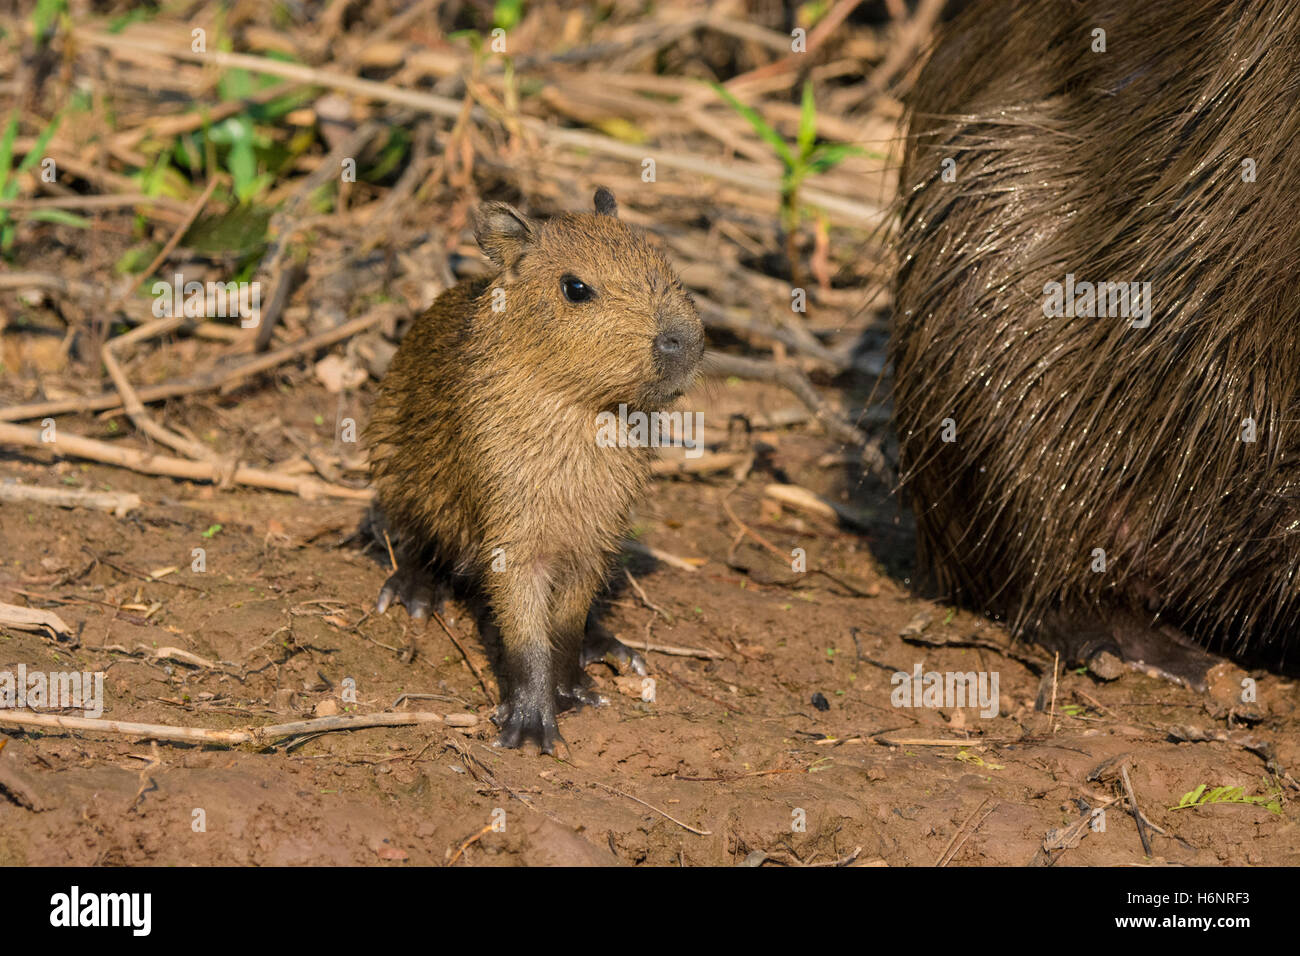 Wild Baby Capybara, Hydrochaeris hydrochaeris, next to its mother on the bank of a river in the Pantanal, Brazil, Stock Photo